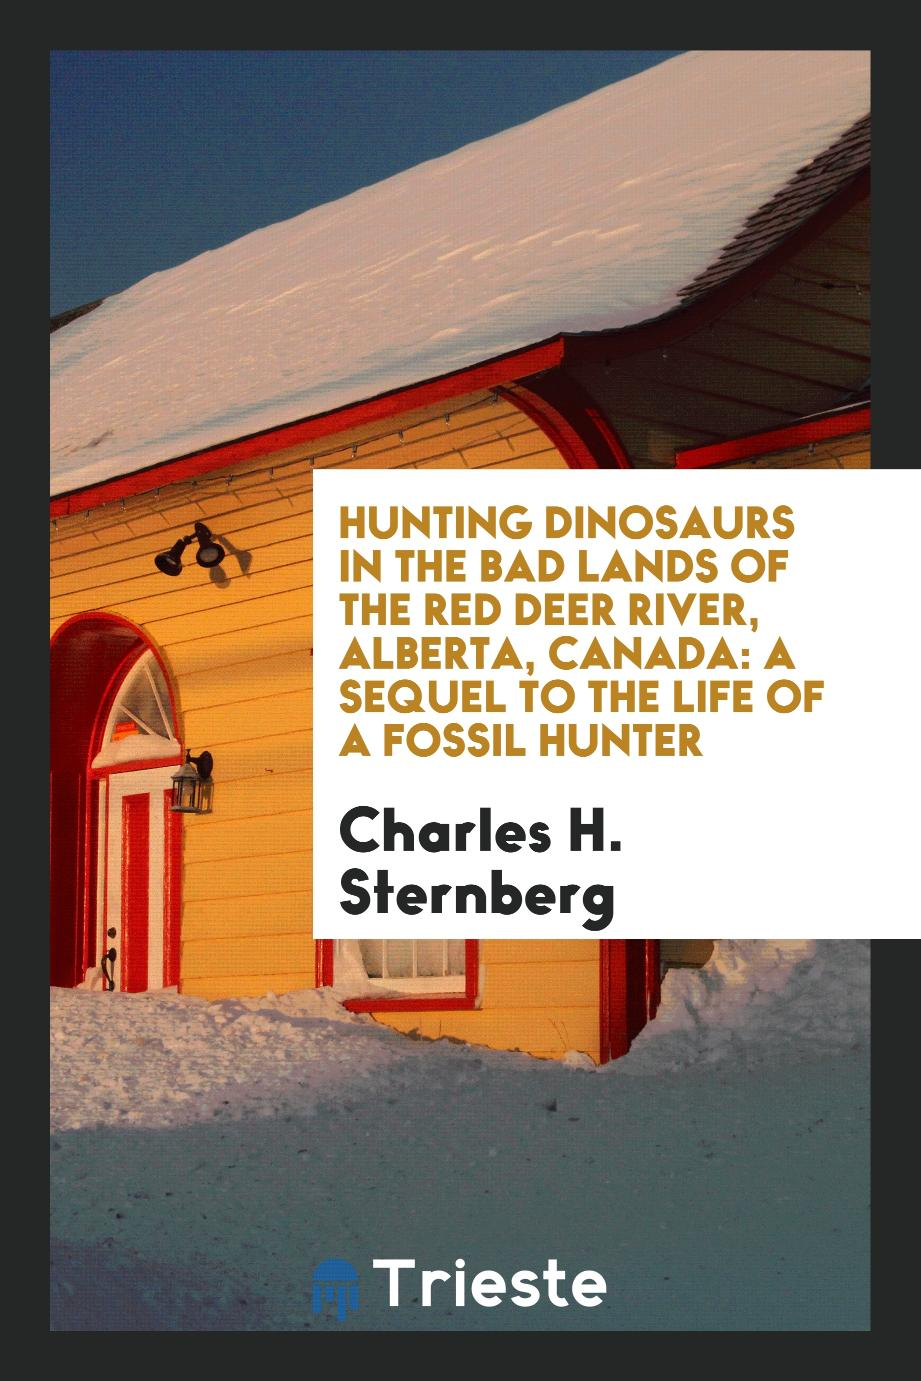 Hunting Dinosaurs in the Bad Lands of the Red Deer River, Alberta, Canada: A Sequel to the Life of a Fossil Hunter